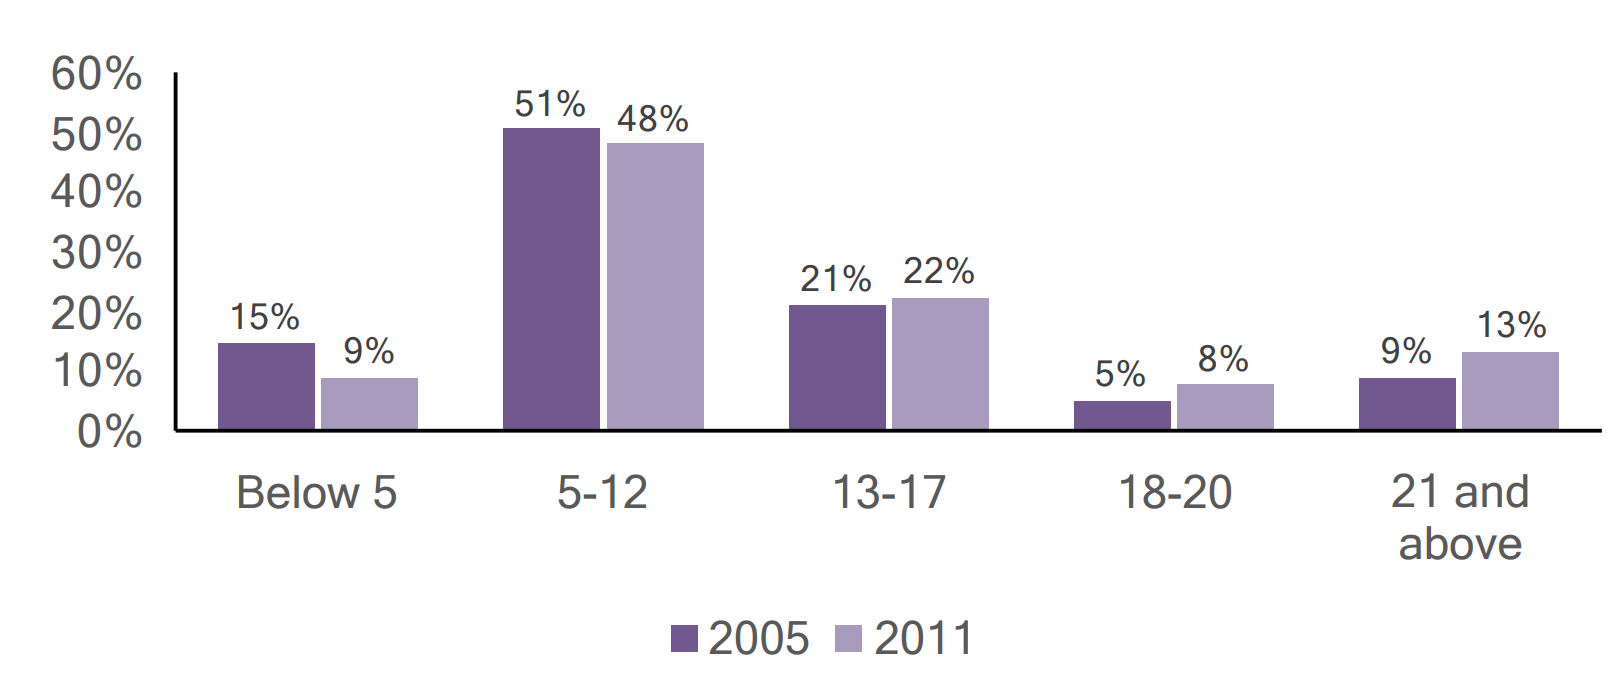 Bar graph of individuals with autism in Lackawanna County by age, comparing 2005 and 2011 data.